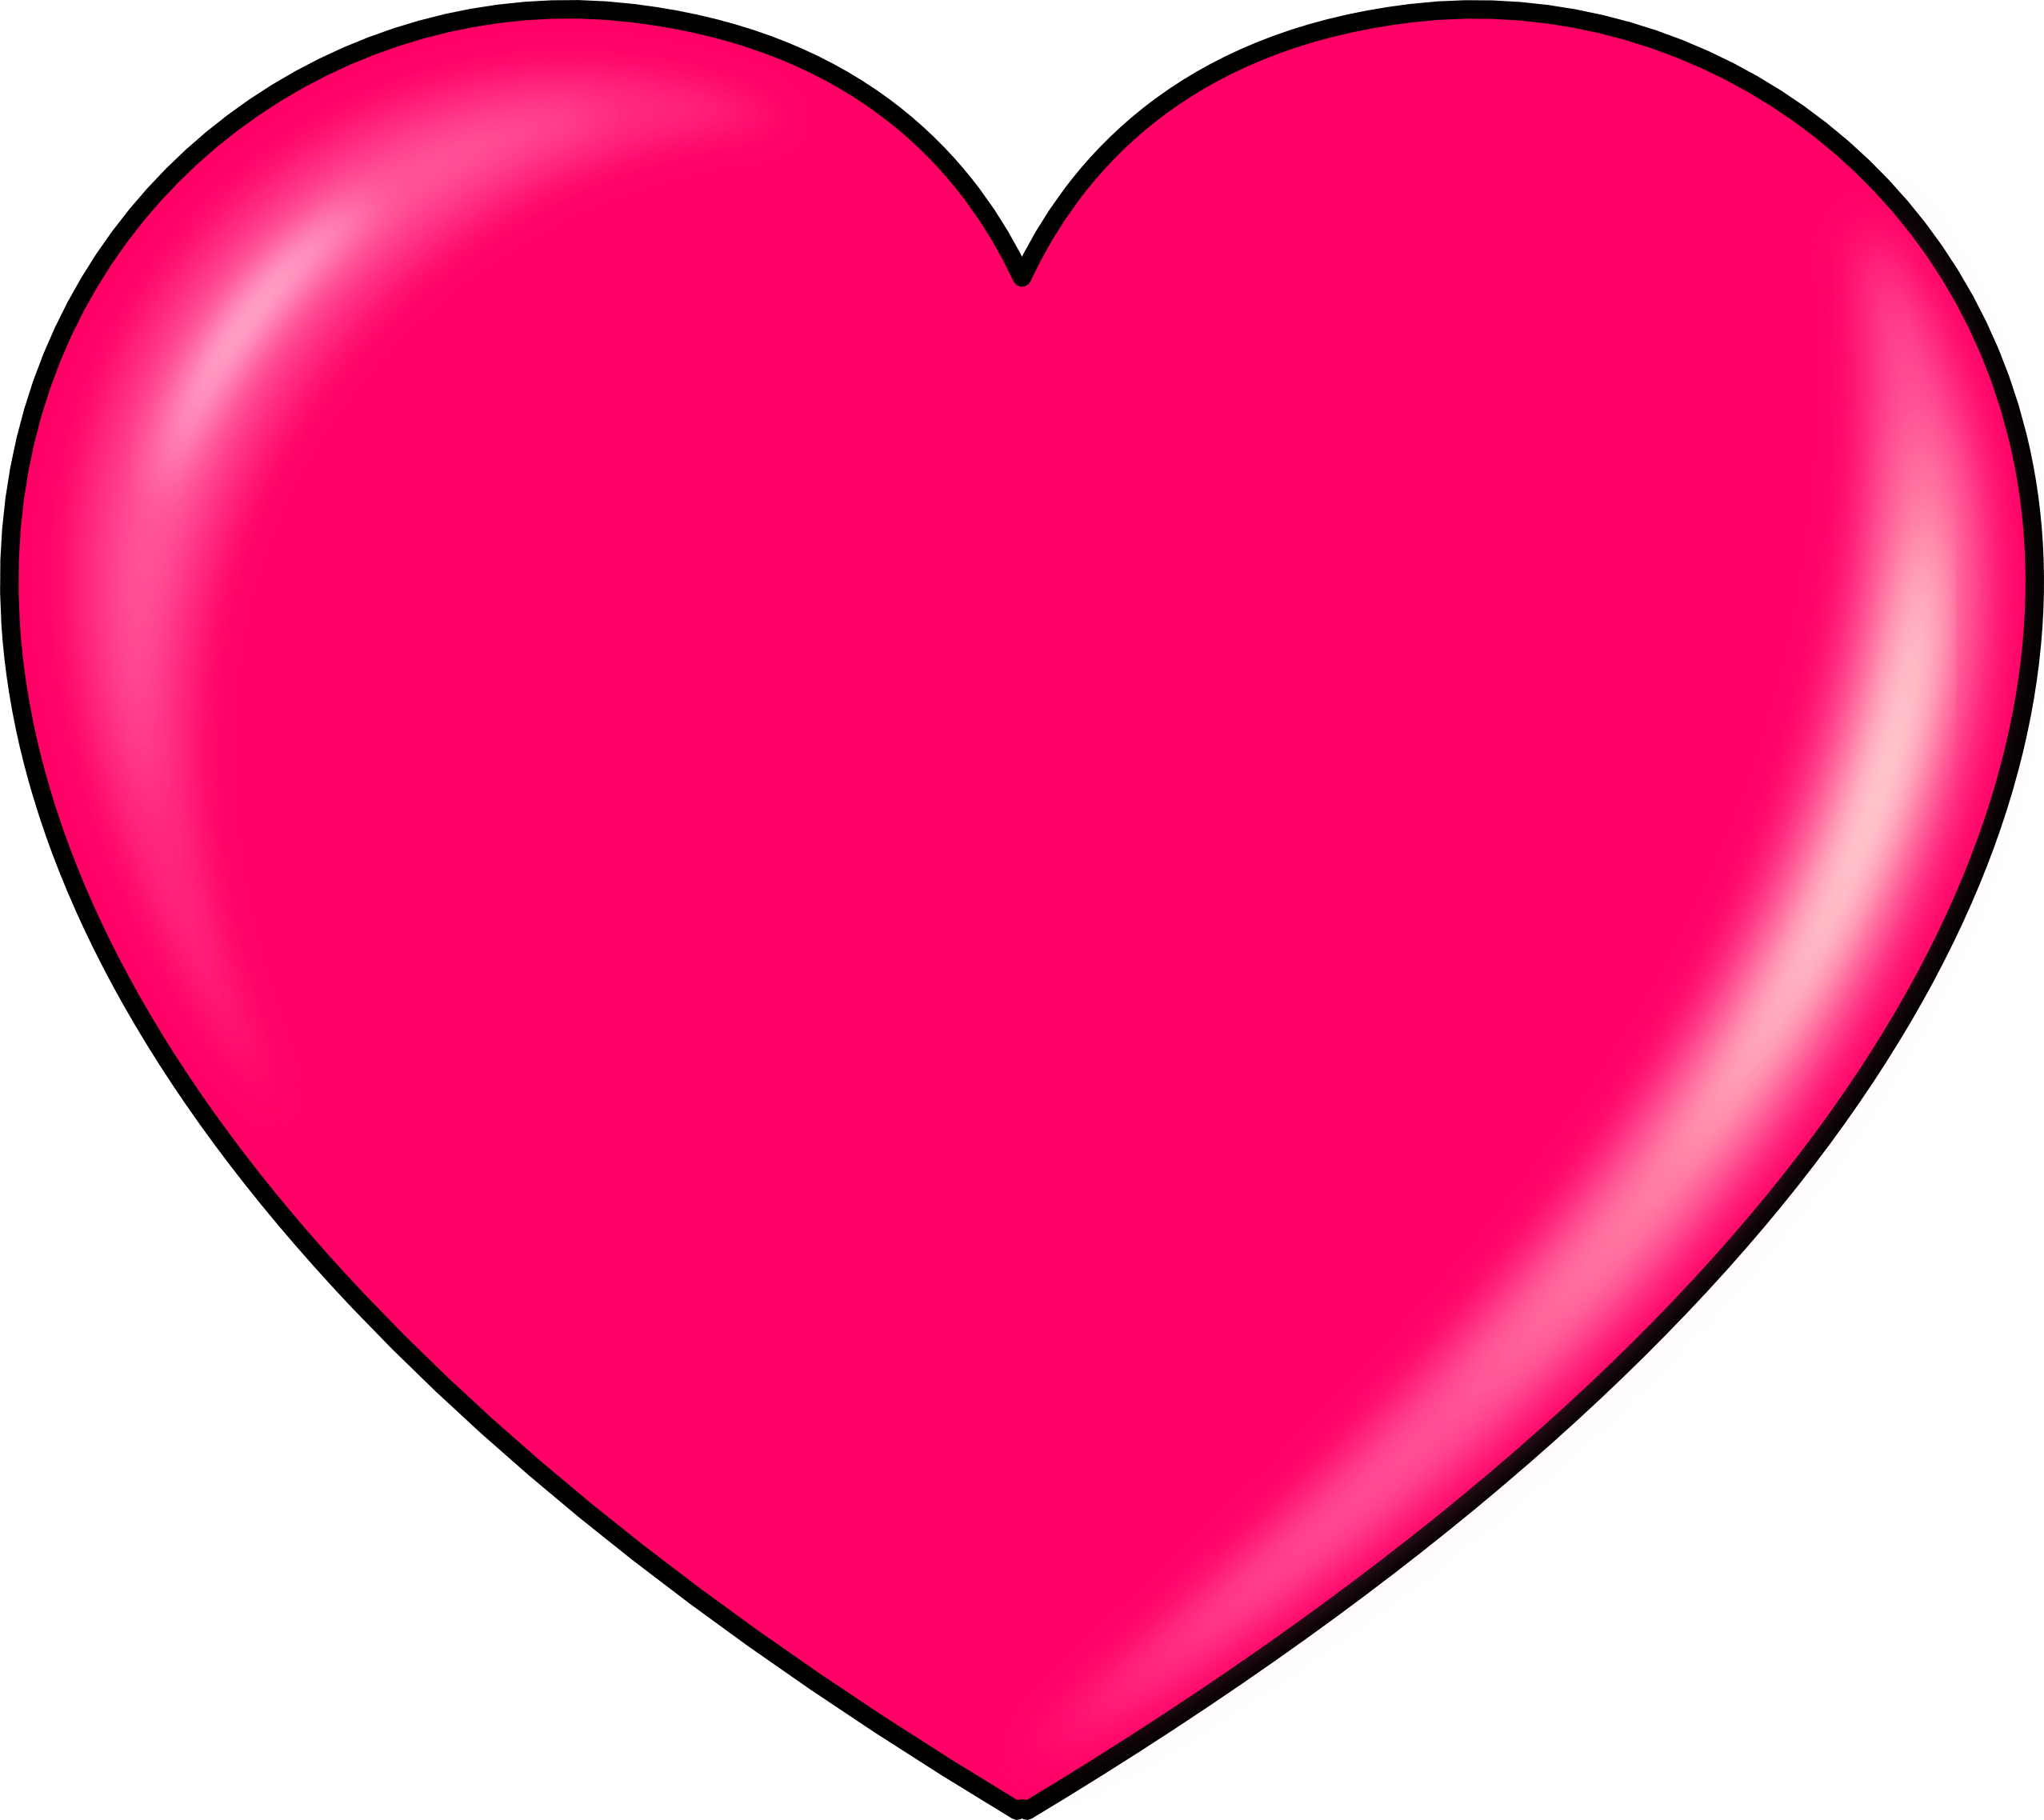 Pink Heart Clipart transparent PNG.